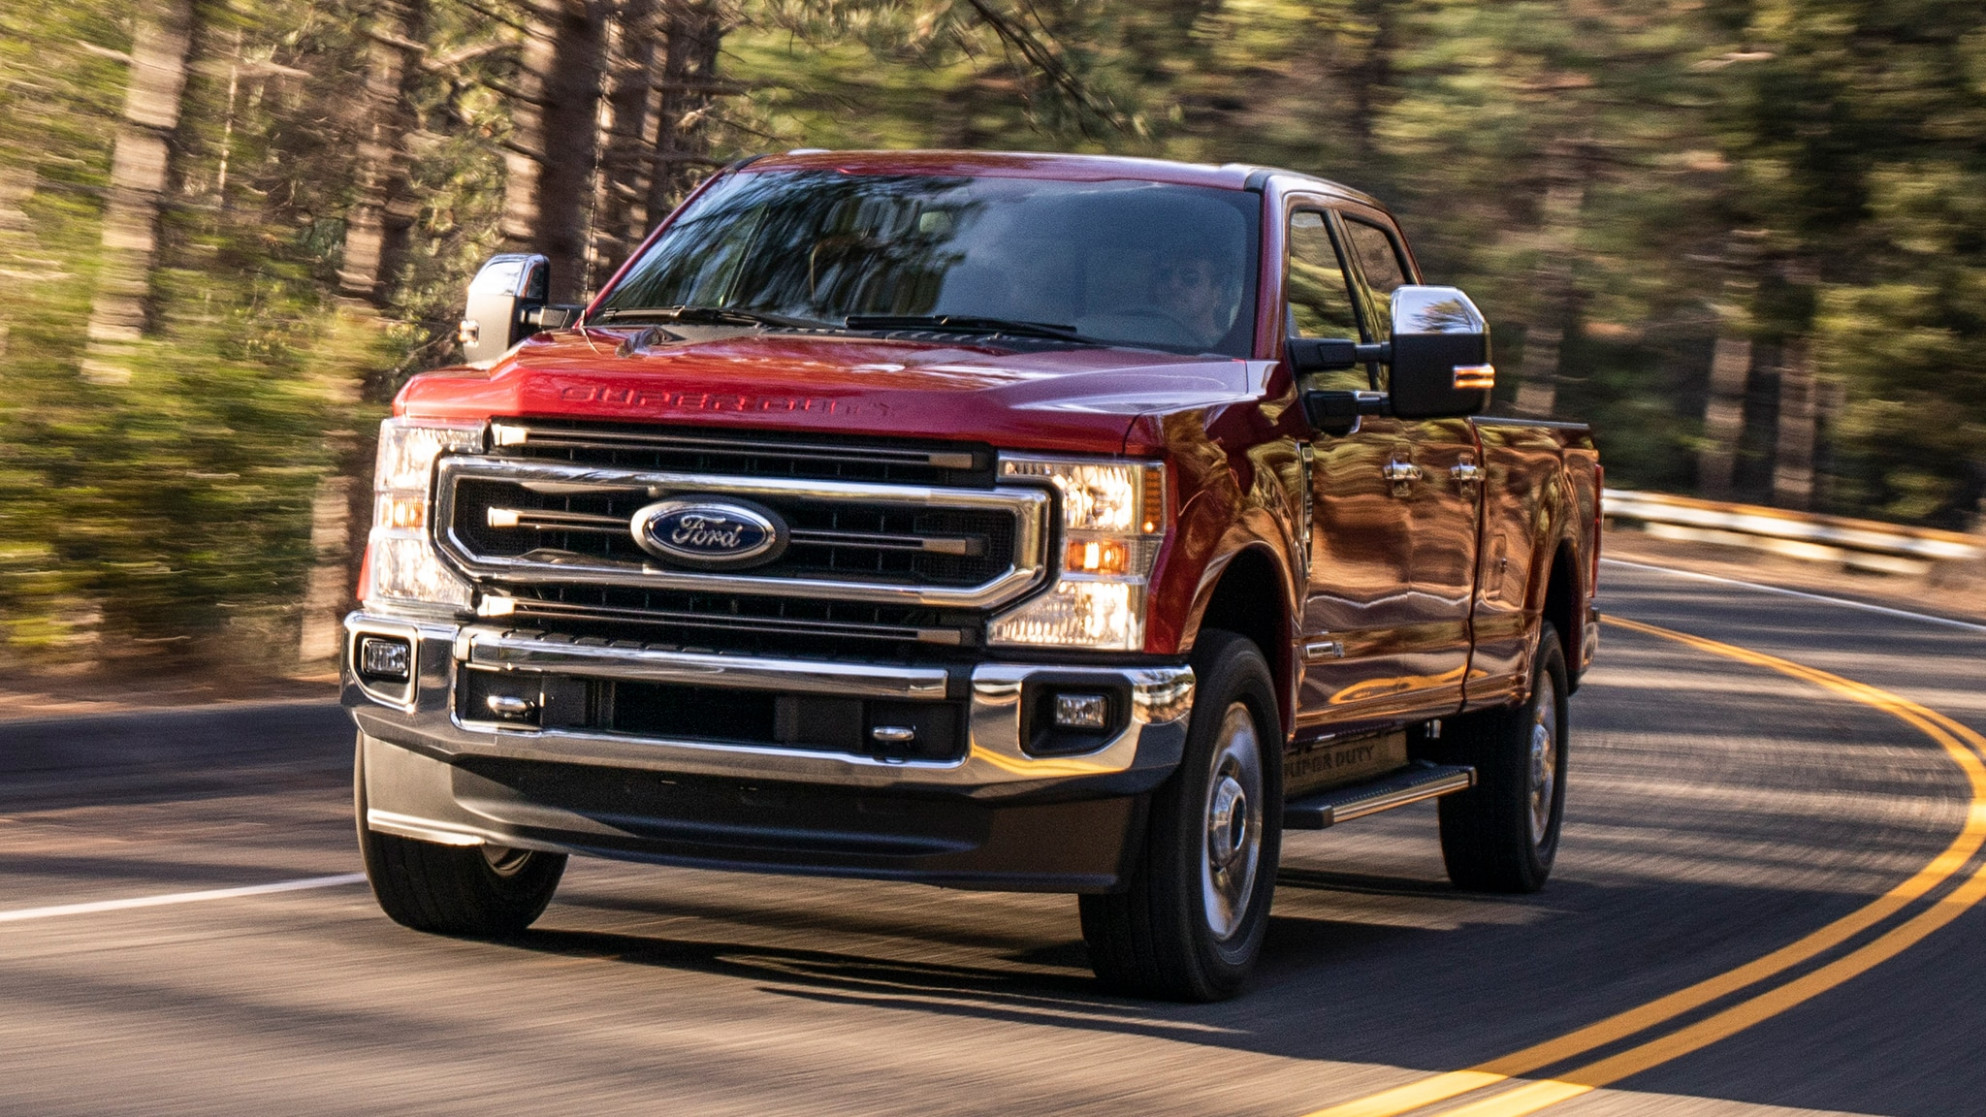 7 Ford Super Duty: Engine Specs, Towing Capacity Revealed